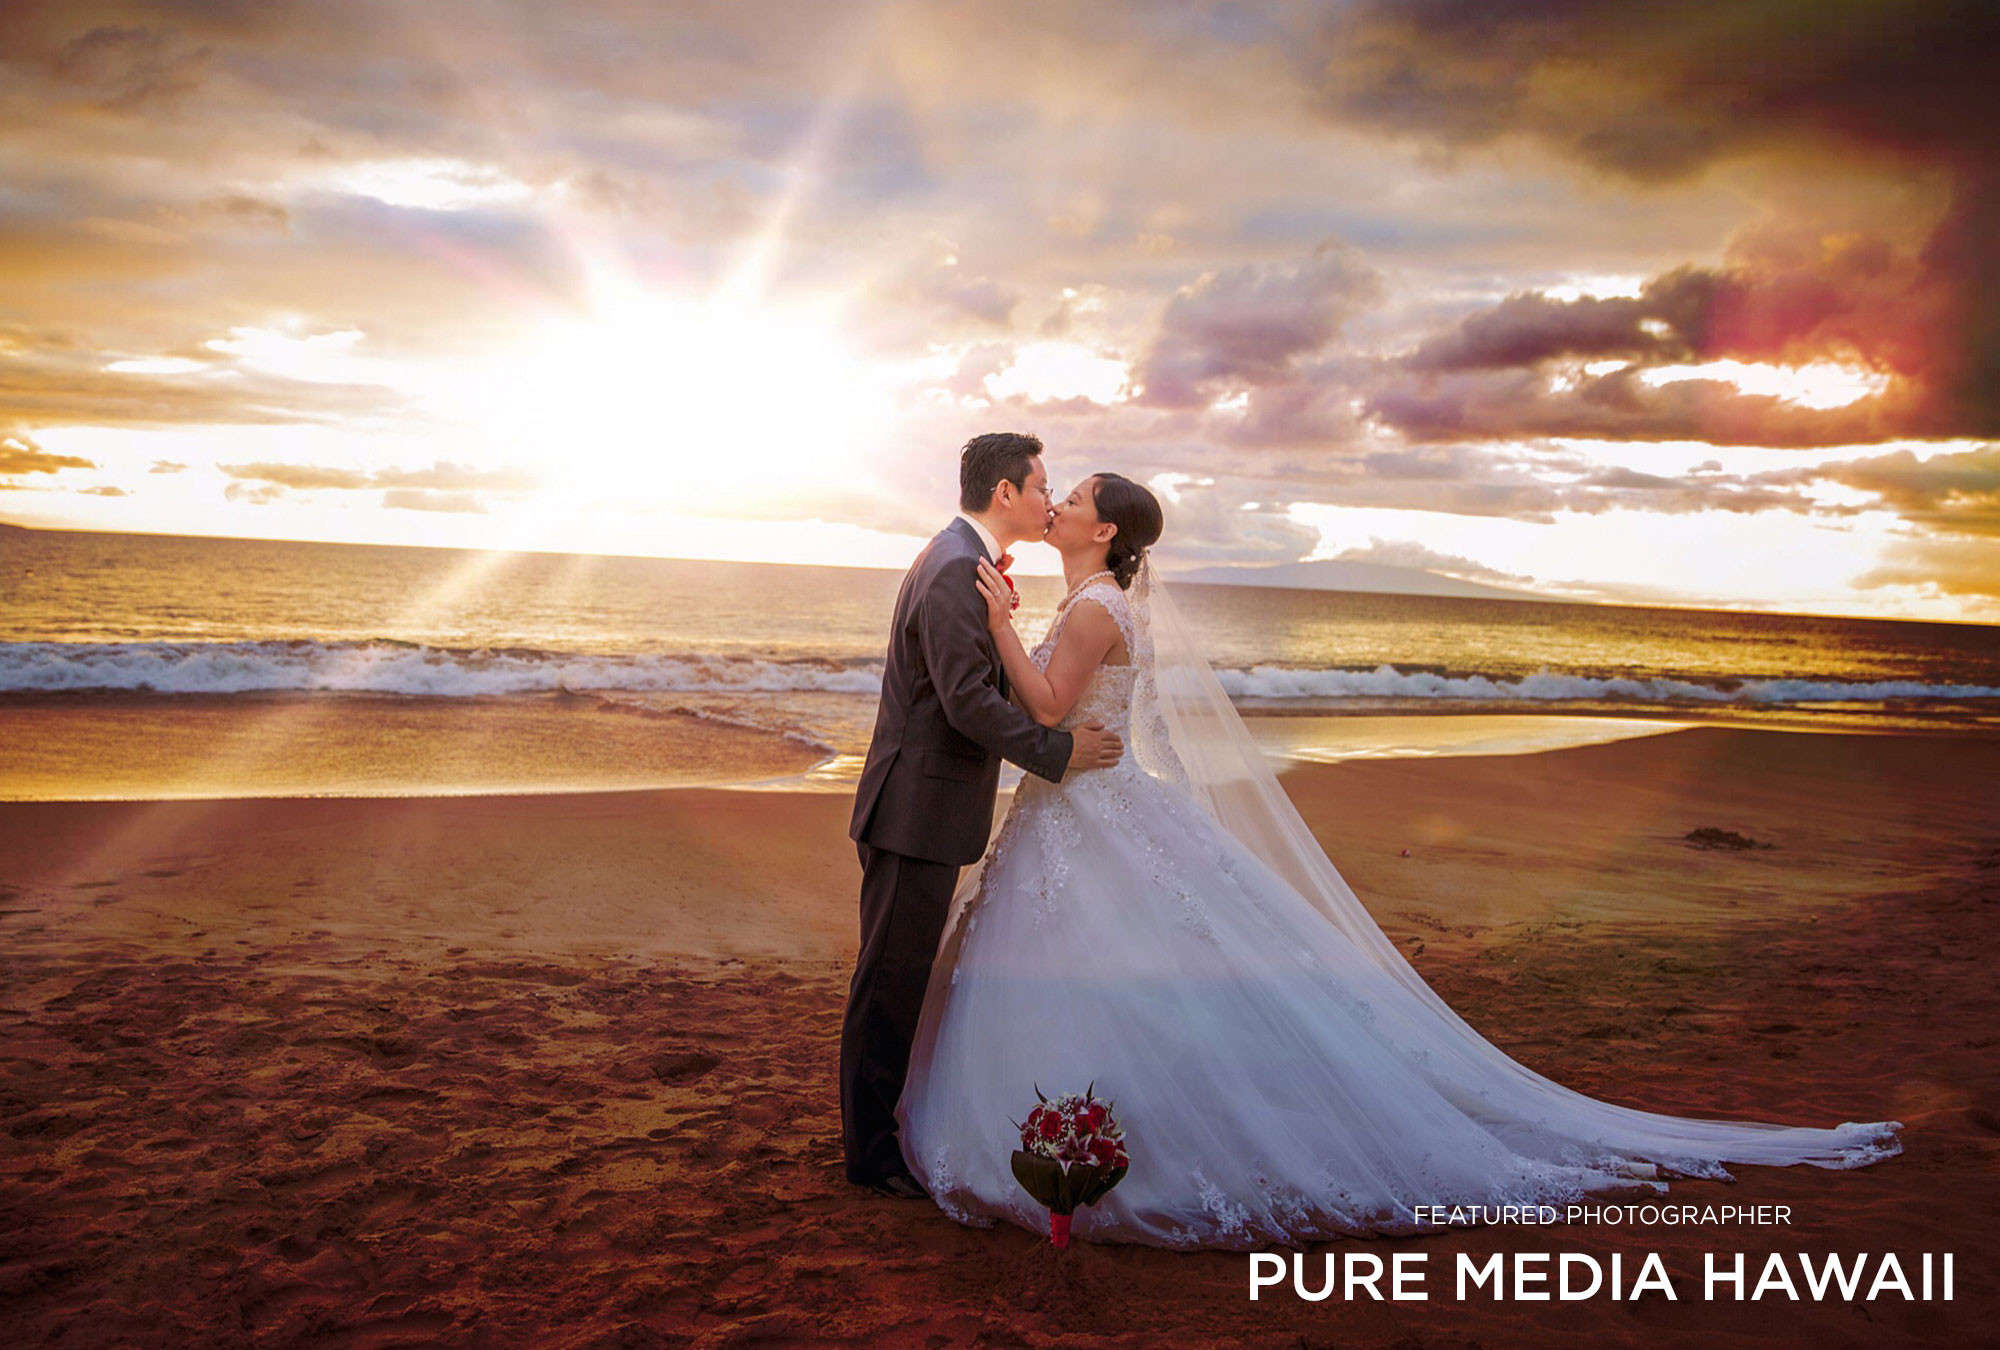 Pure Media Hawaii - Featured Photographer